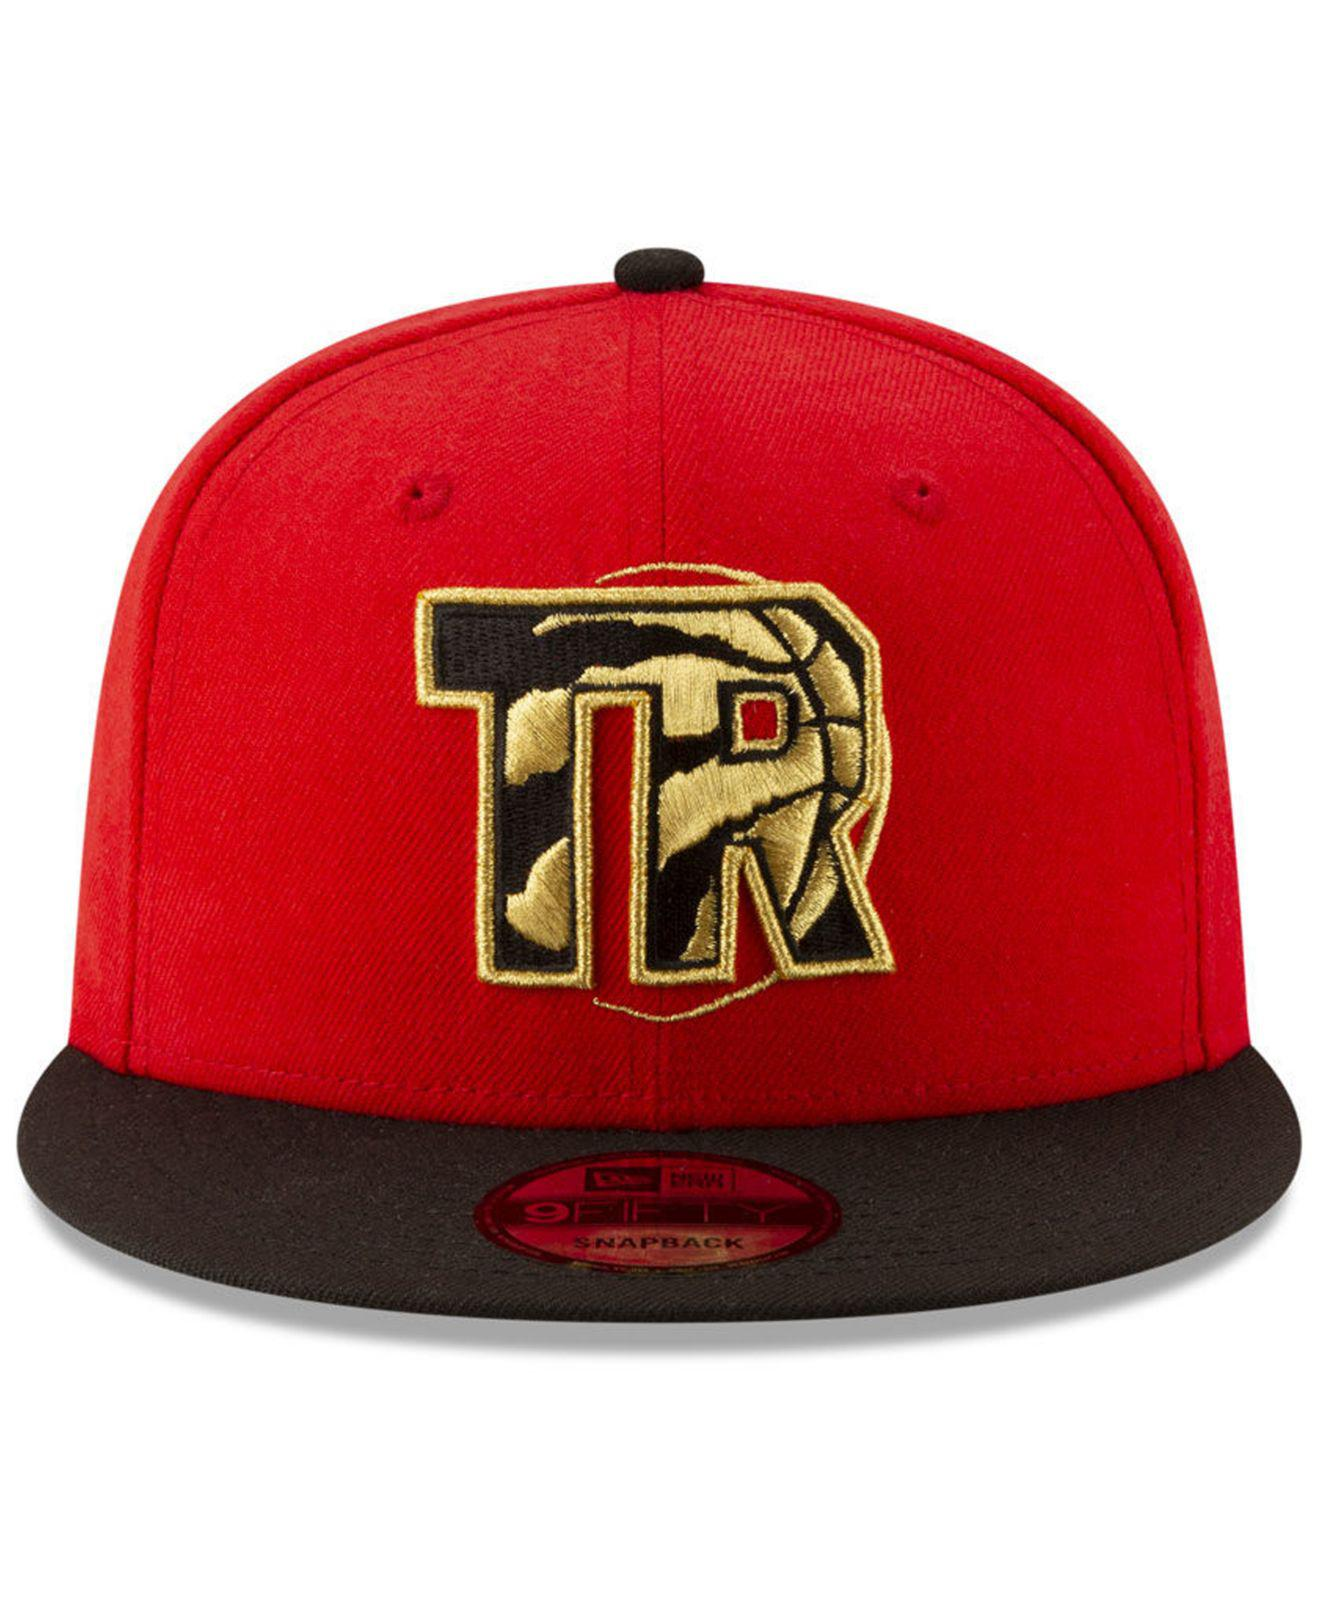 premium selection 676ba b1a62 ... greece lyst ktz toronto raptors light city combo 9fifty snapback cap in  red for men 0fe01